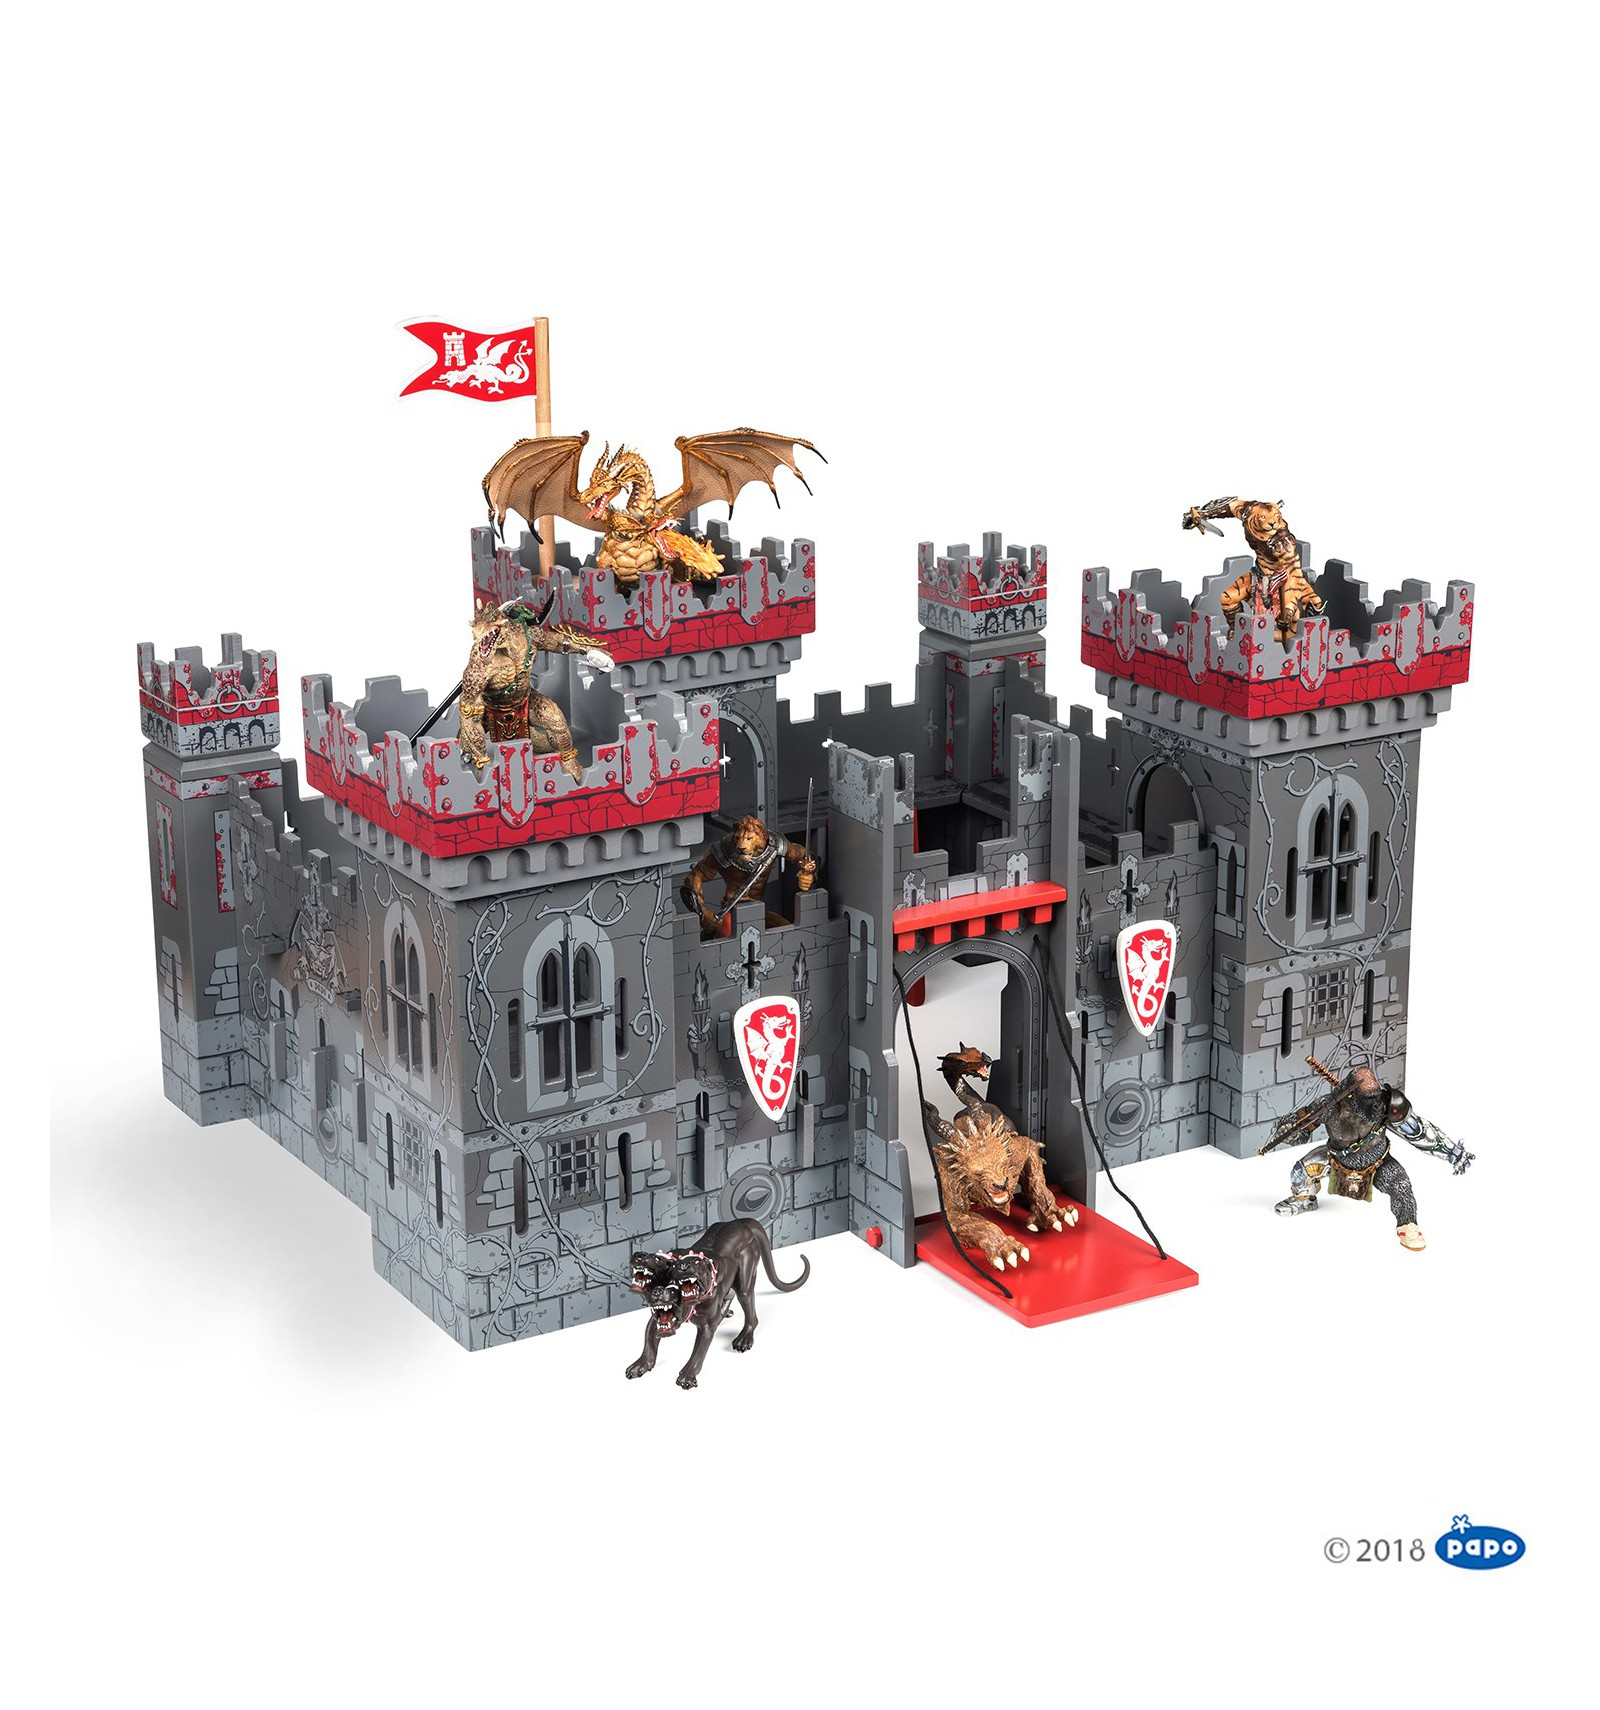 Papo 60052 Mutant Castle Playset The Mutants/' castle